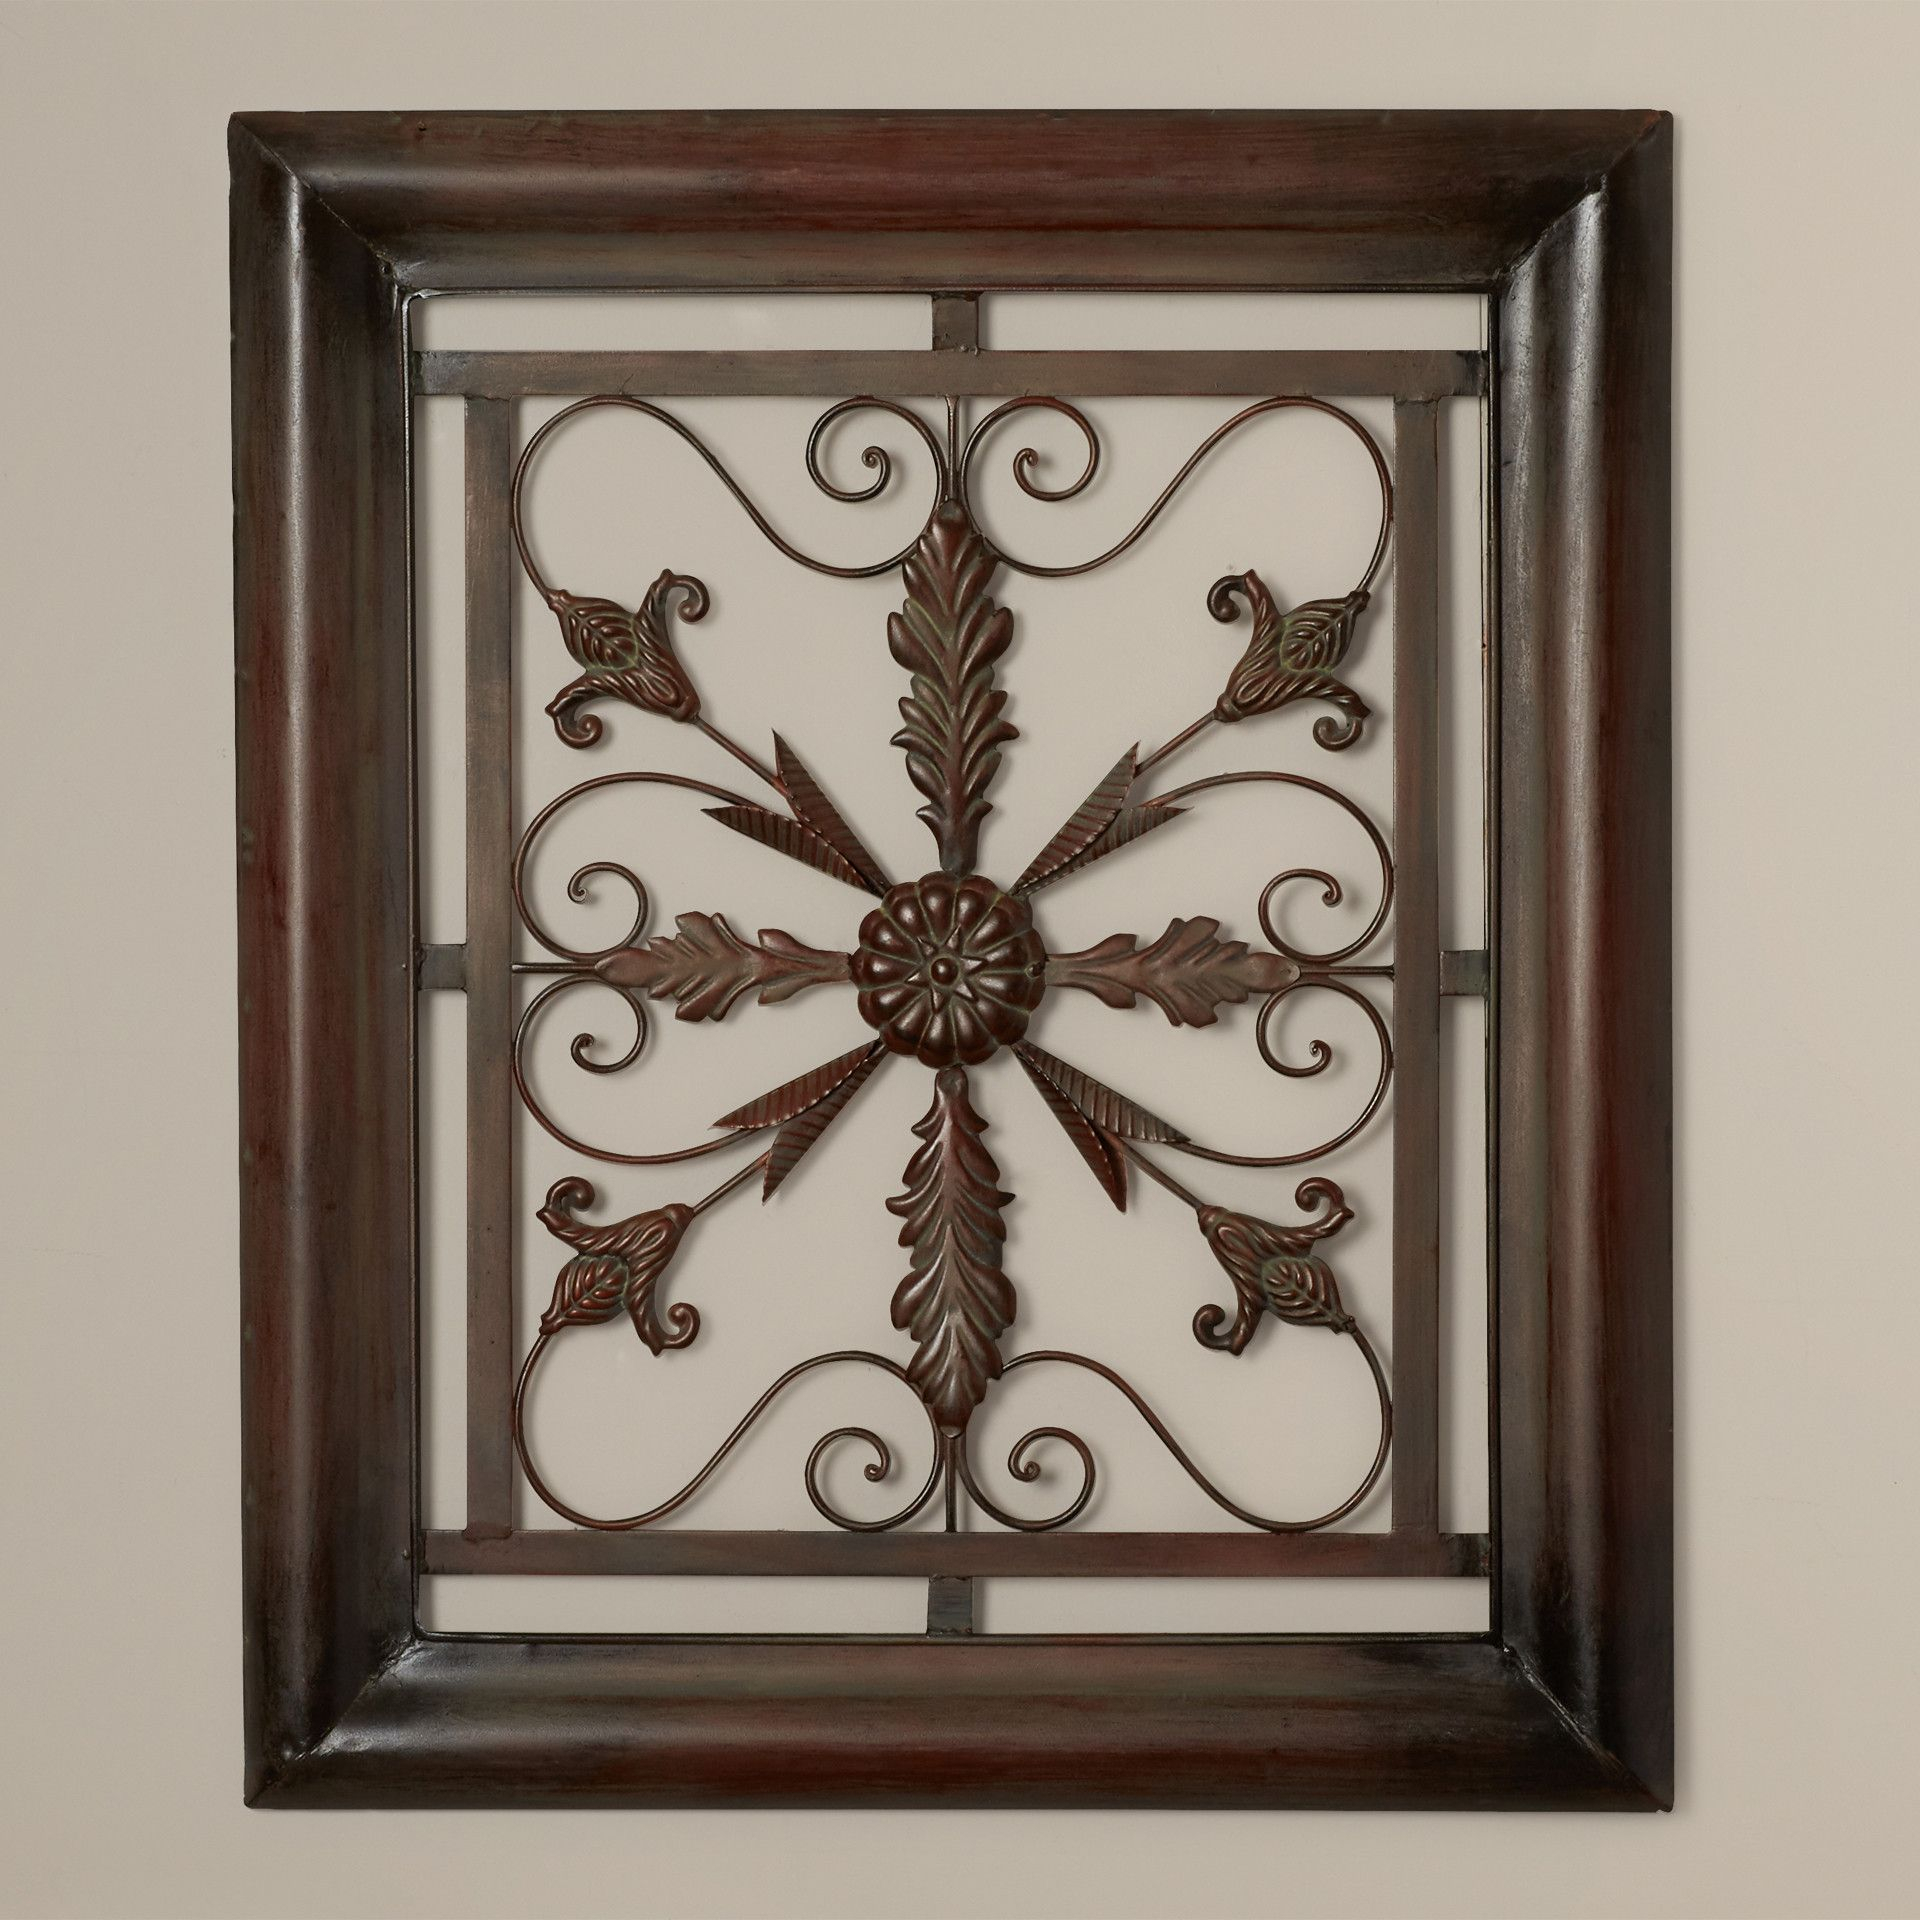 Charlton Home® Bayliss Square Scroll Wall Decor   Tuscan Pertaining To Wall Decor By Charlton Home (View 8 of 30)